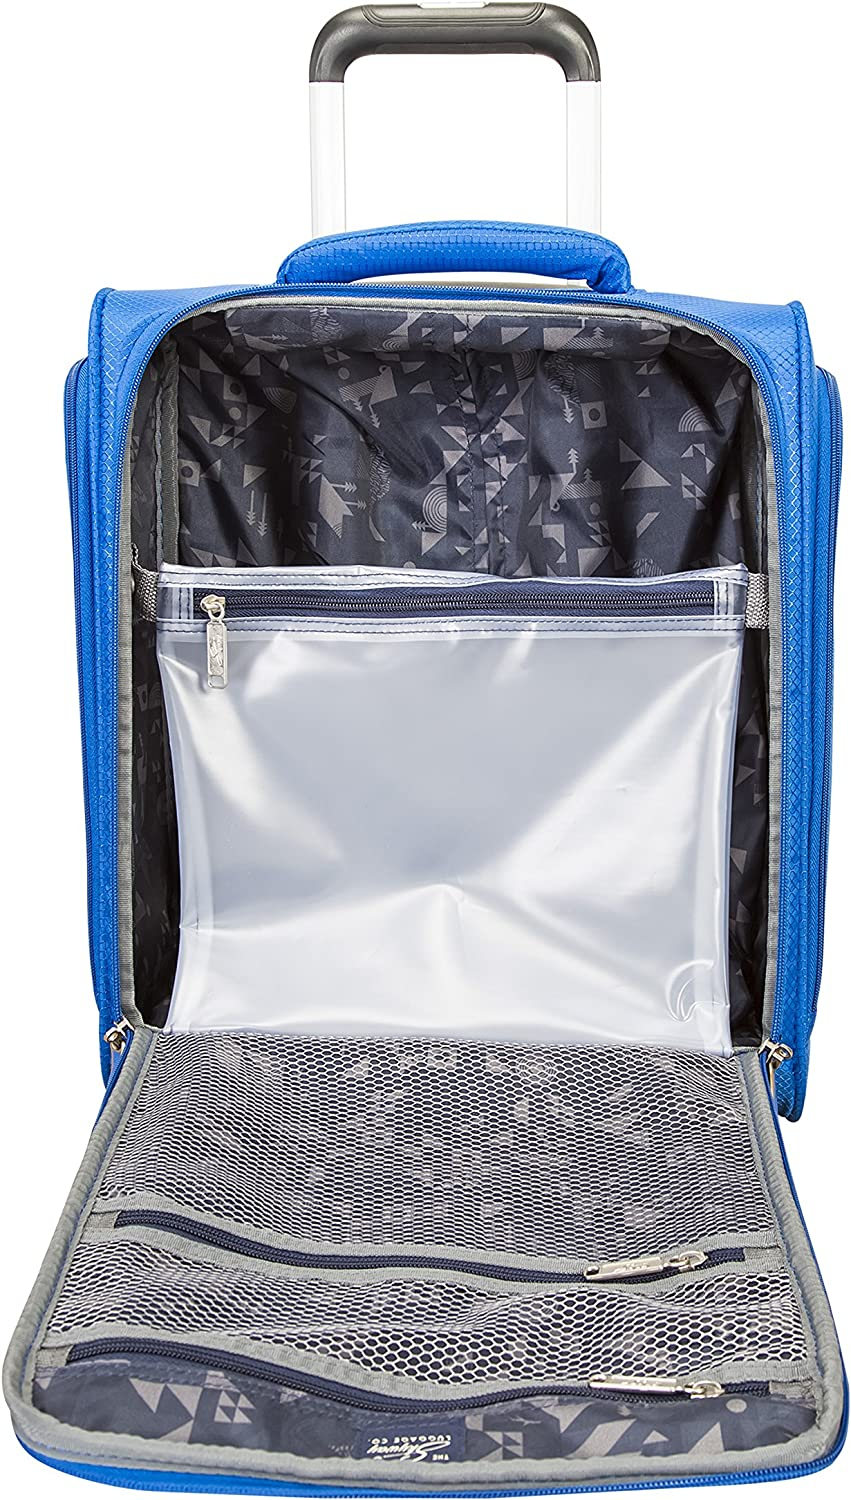 Mirage 2.0 16-Inch Under Seat Rolling Tote